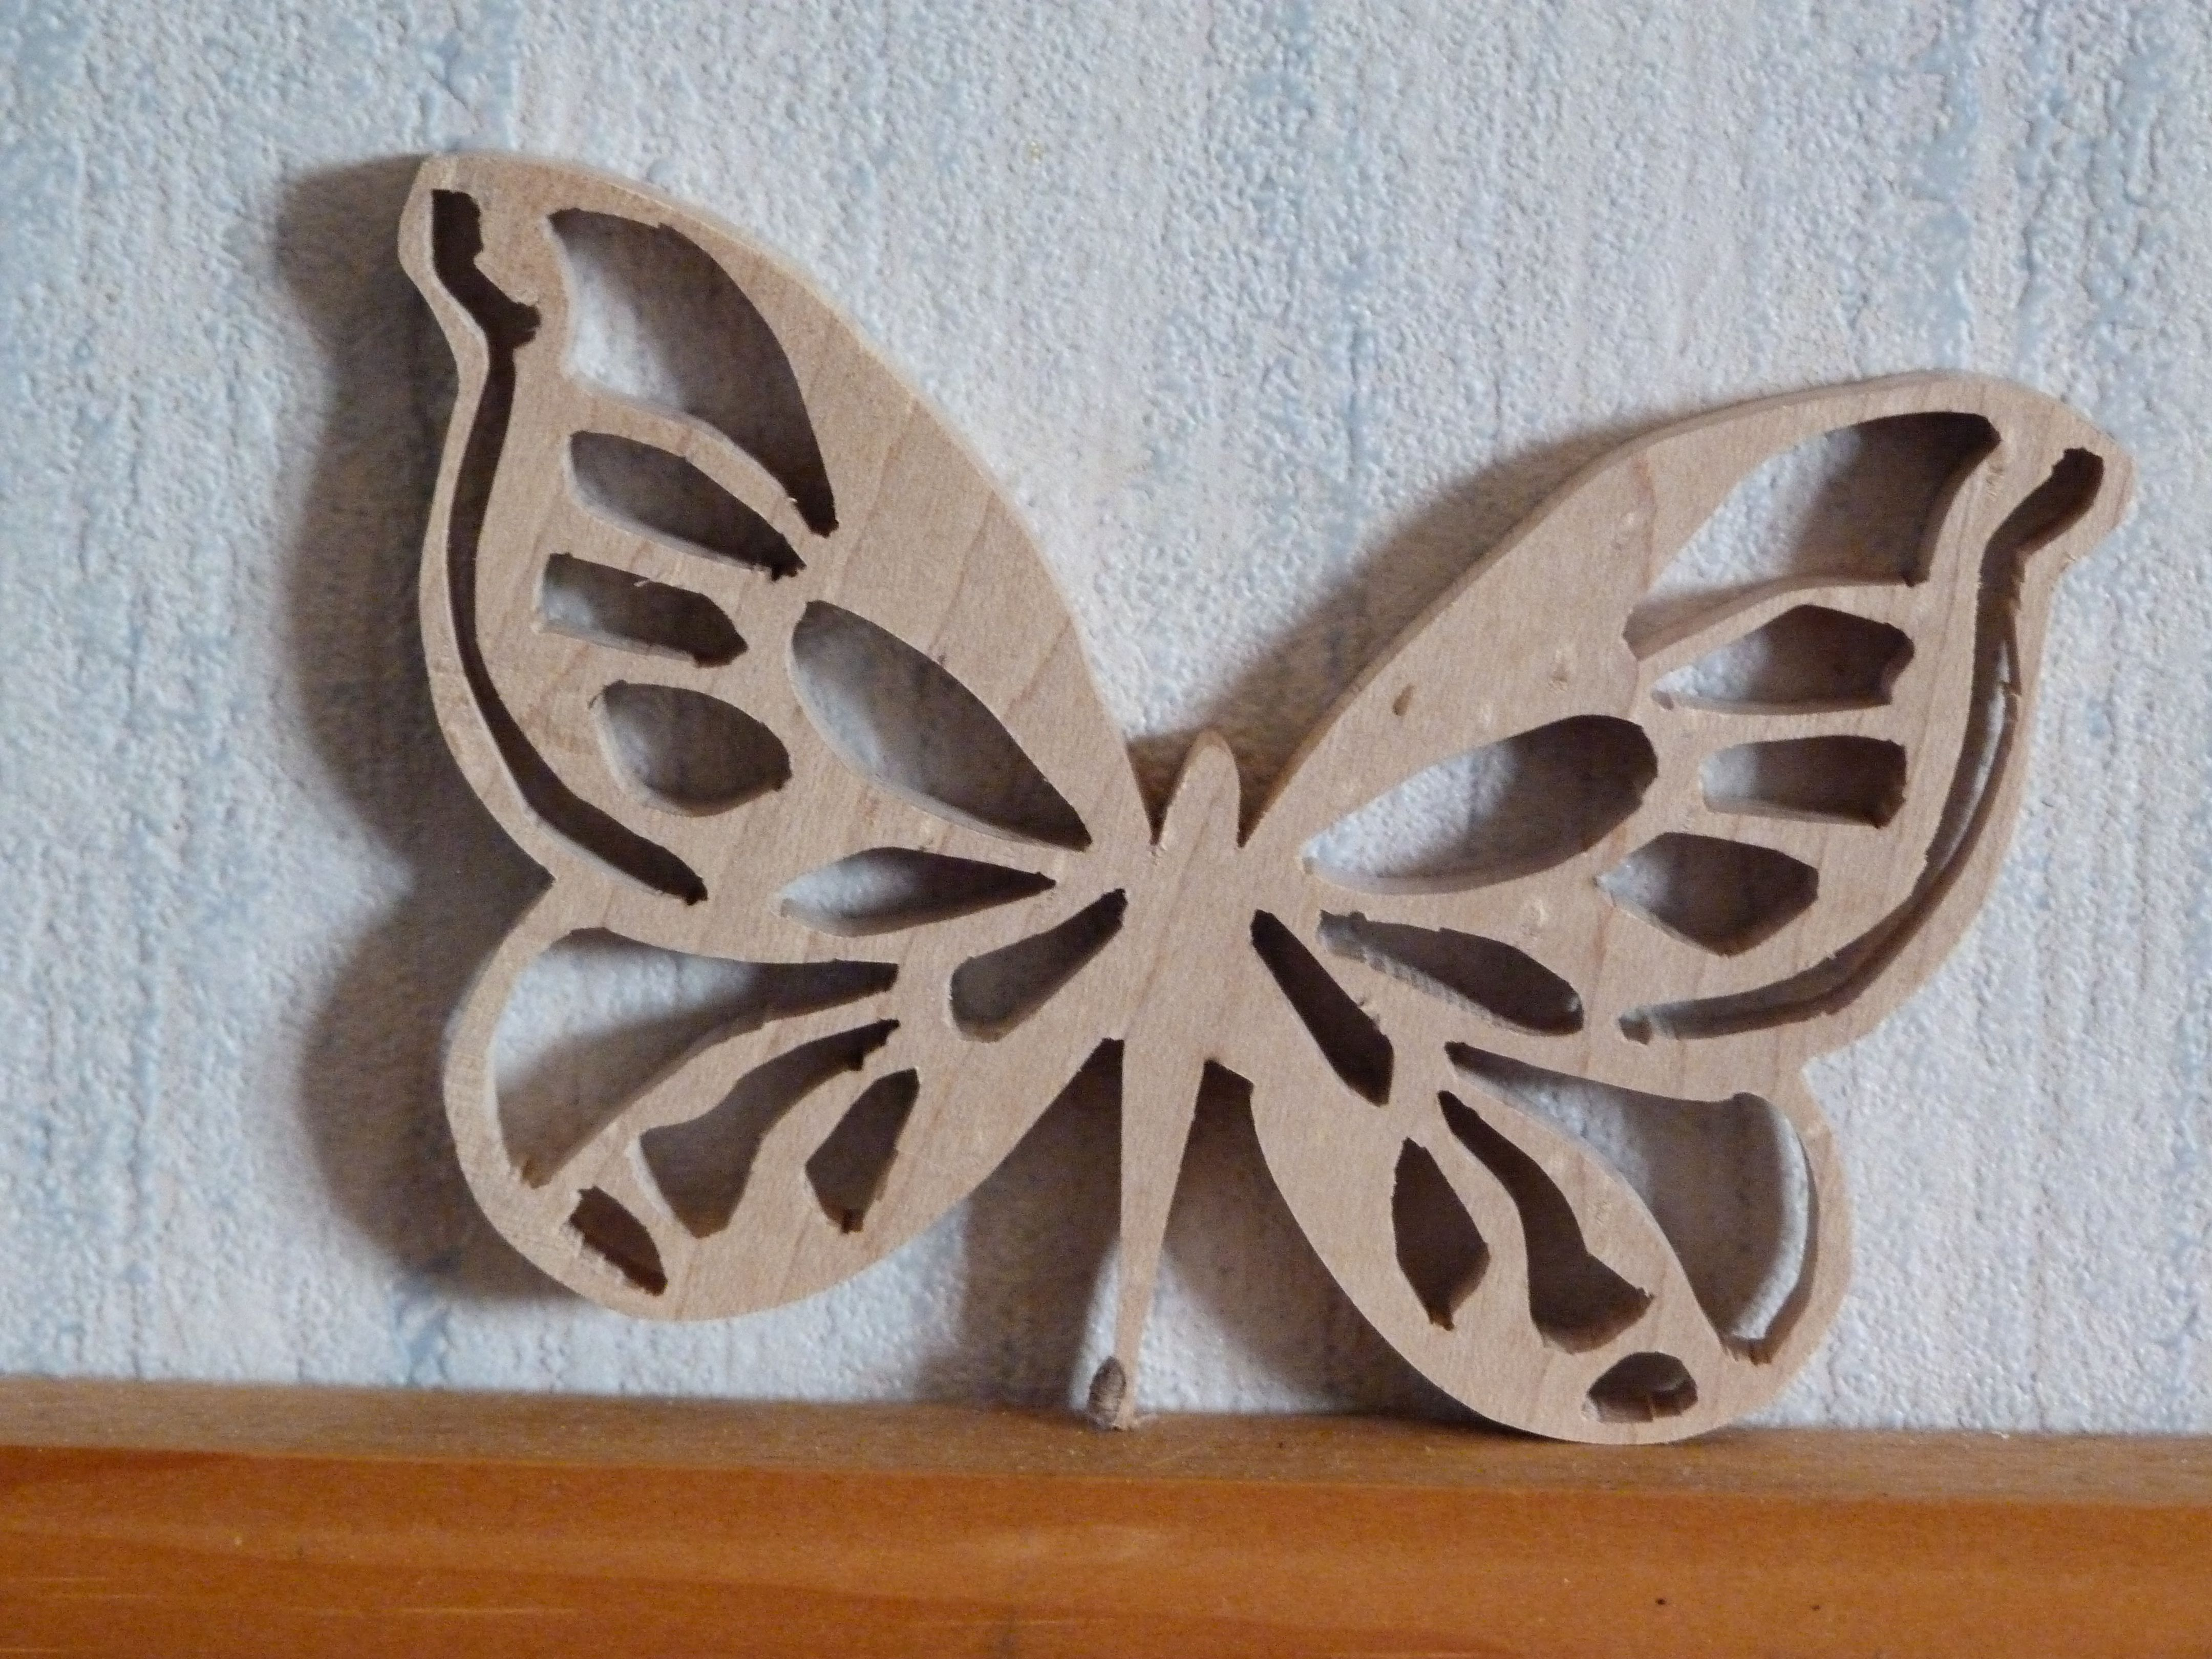 Laubsäge Schablonen Butterfly Done On The Scroll Saw Just For Fun Holz